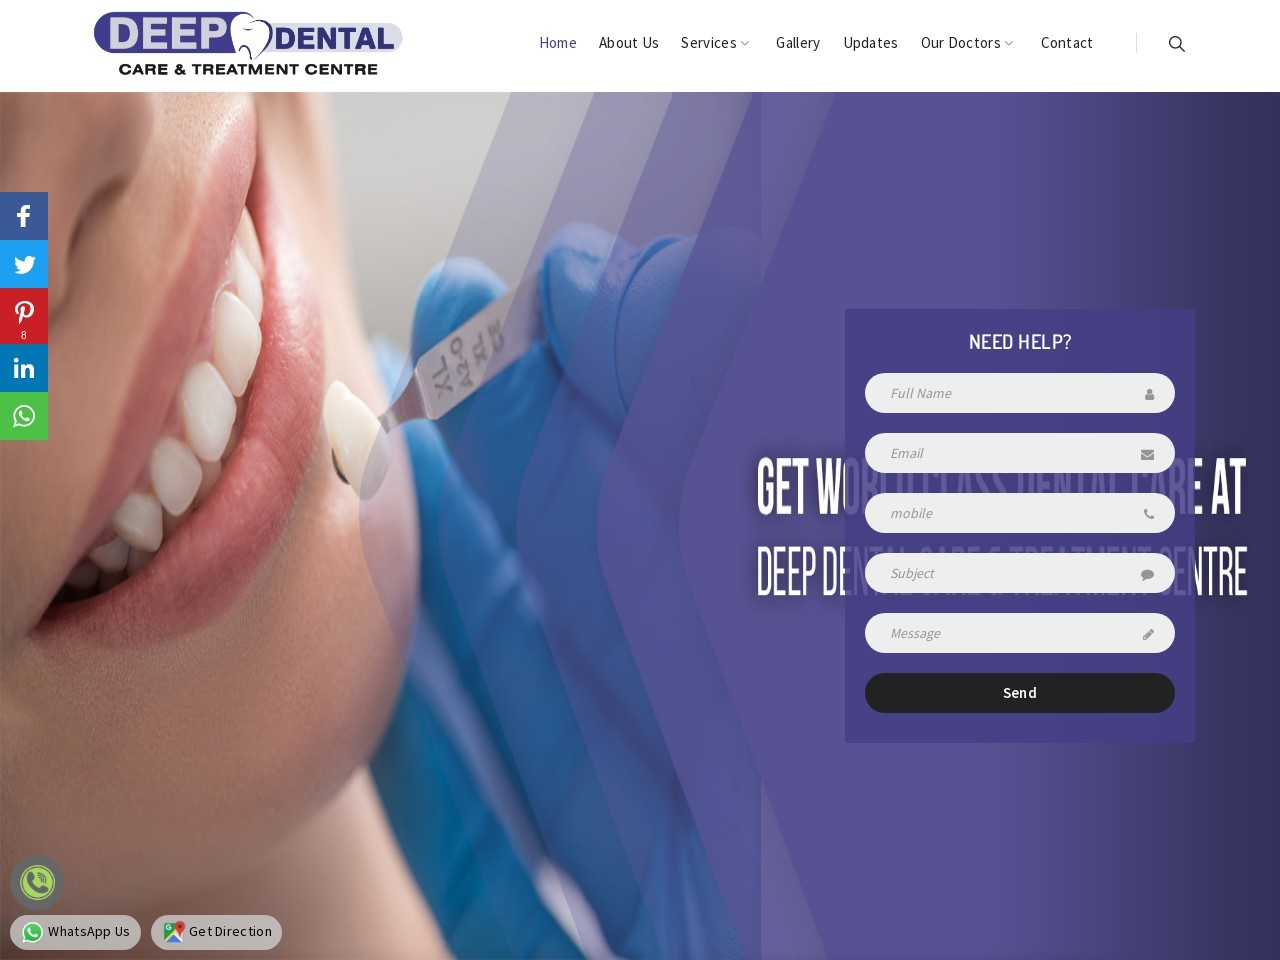 Deep Dental Care & Treatment Centre : Surgical Wisdom Tooth Extraction | Best Dentist in Faridabad